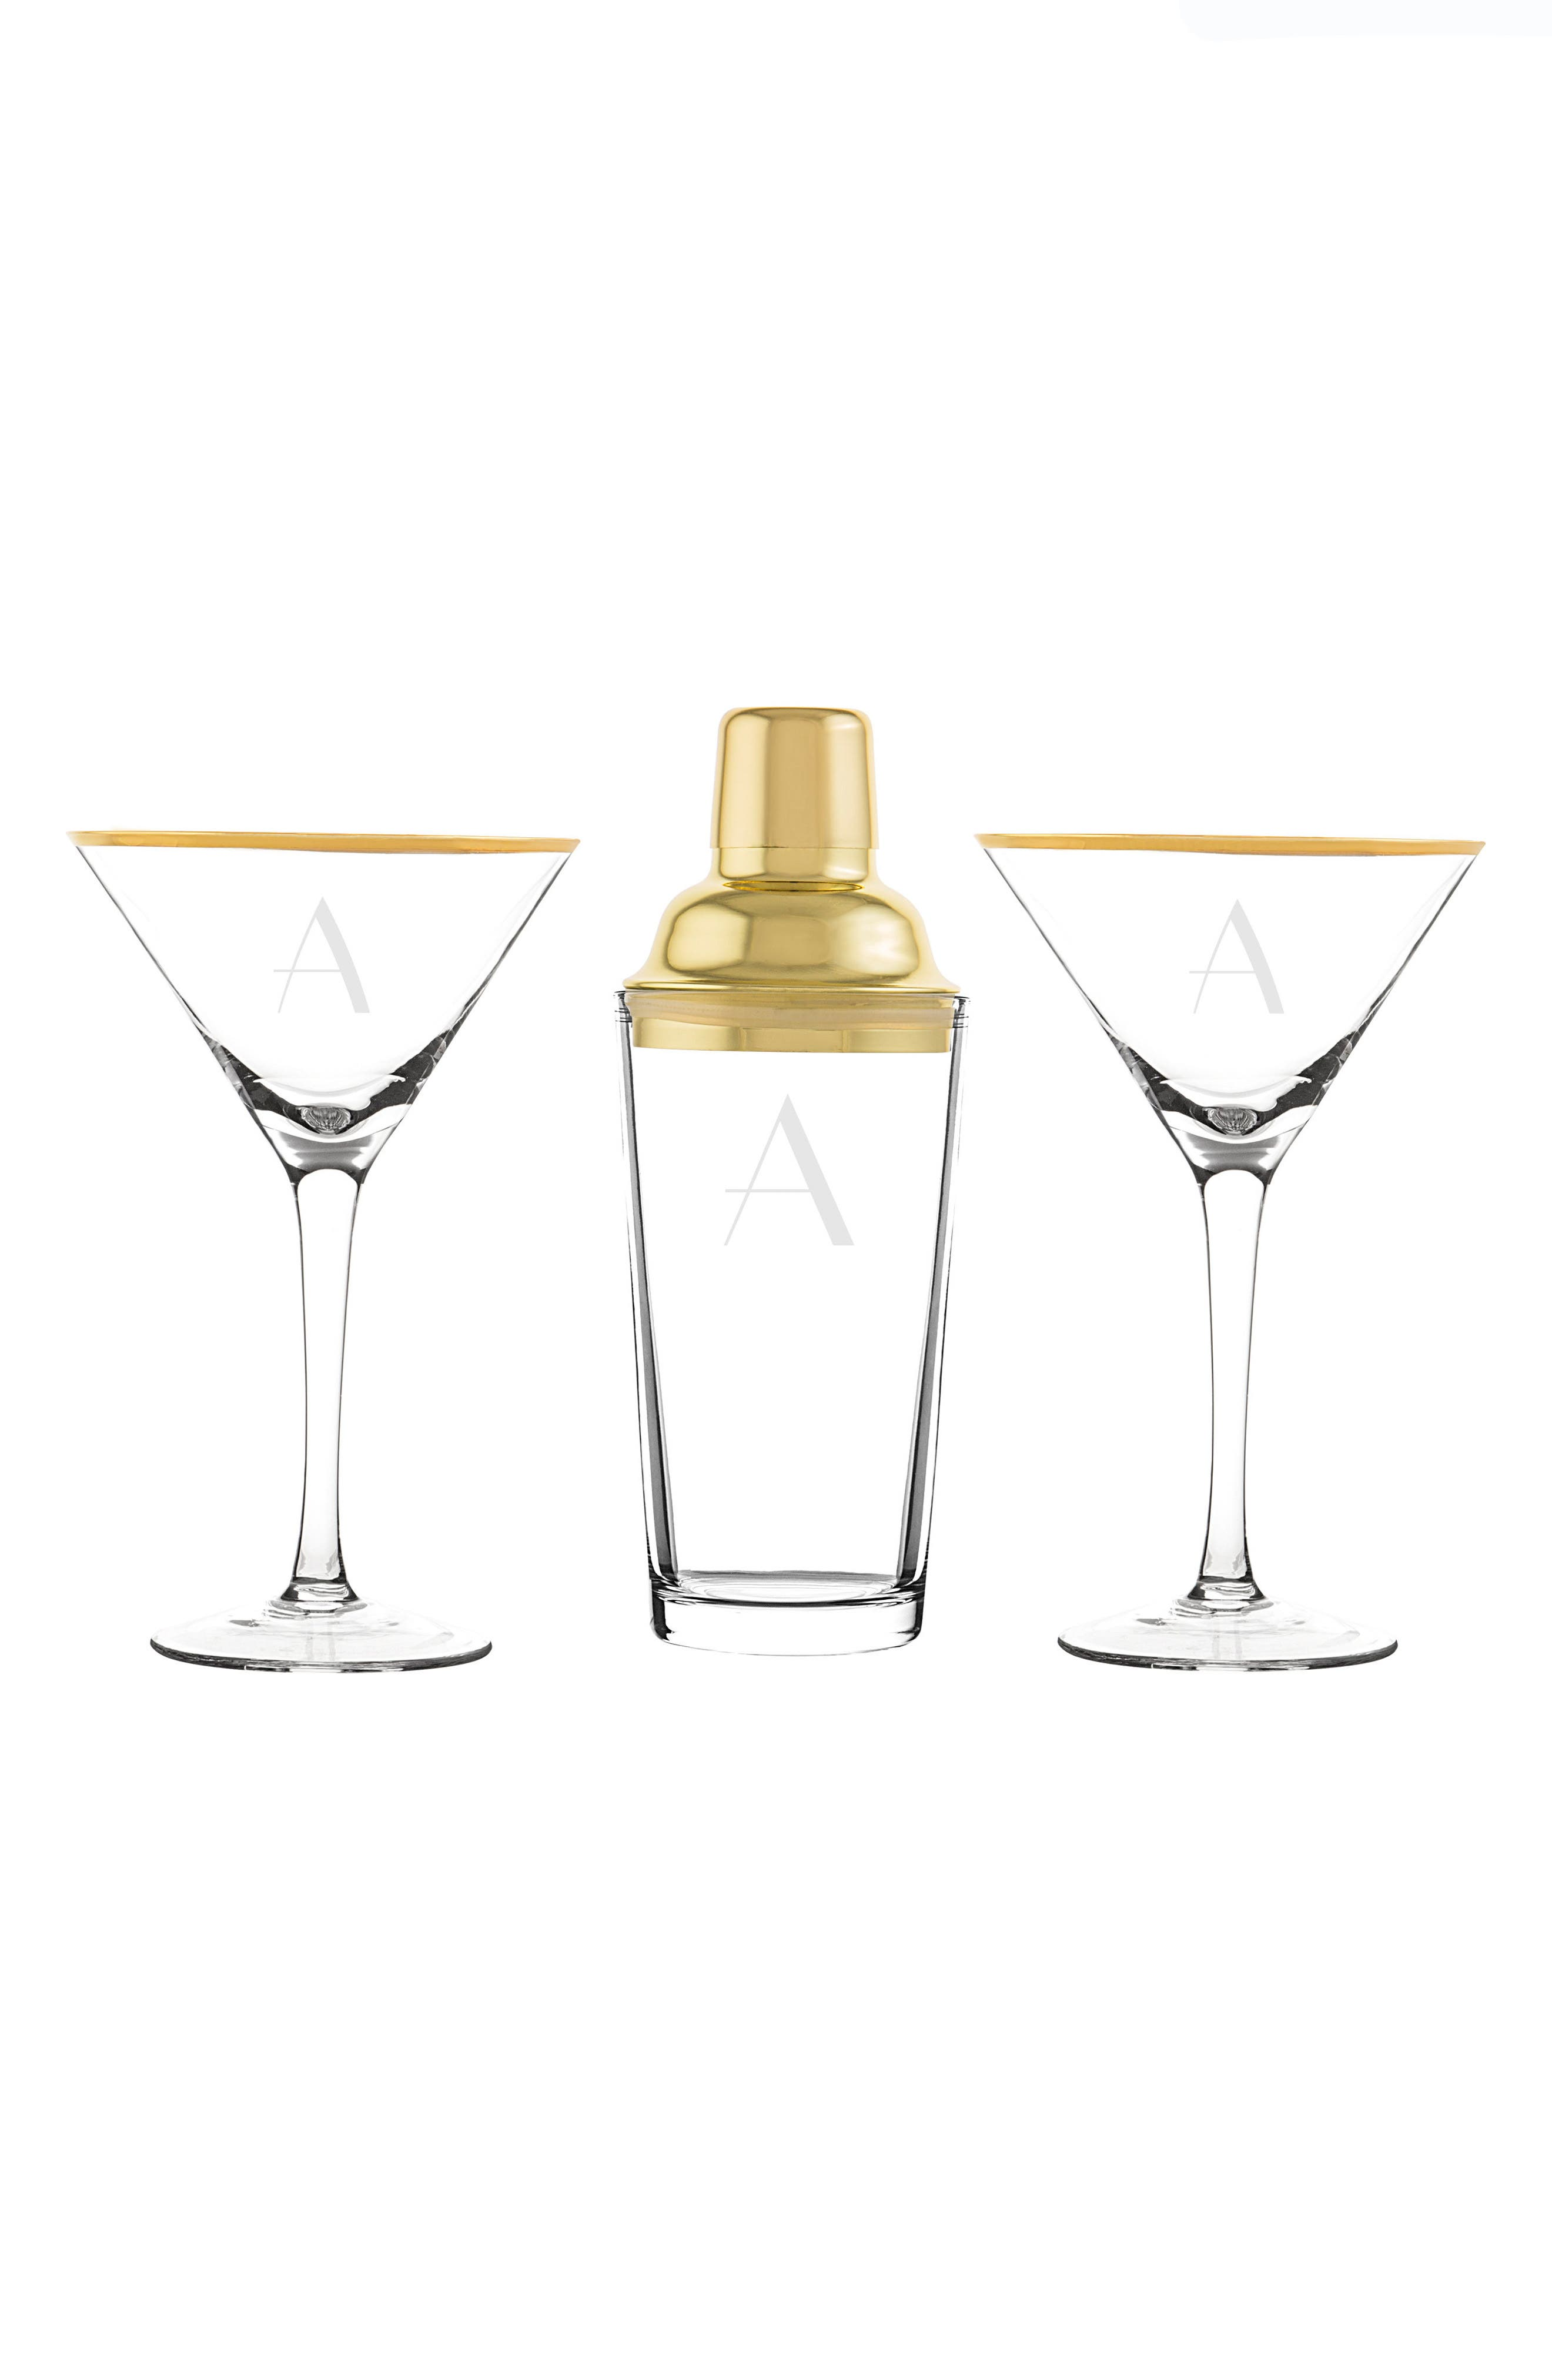 Cathy's Concepts Monogram Martini Glasses & Goldtone Cocktail Shaker